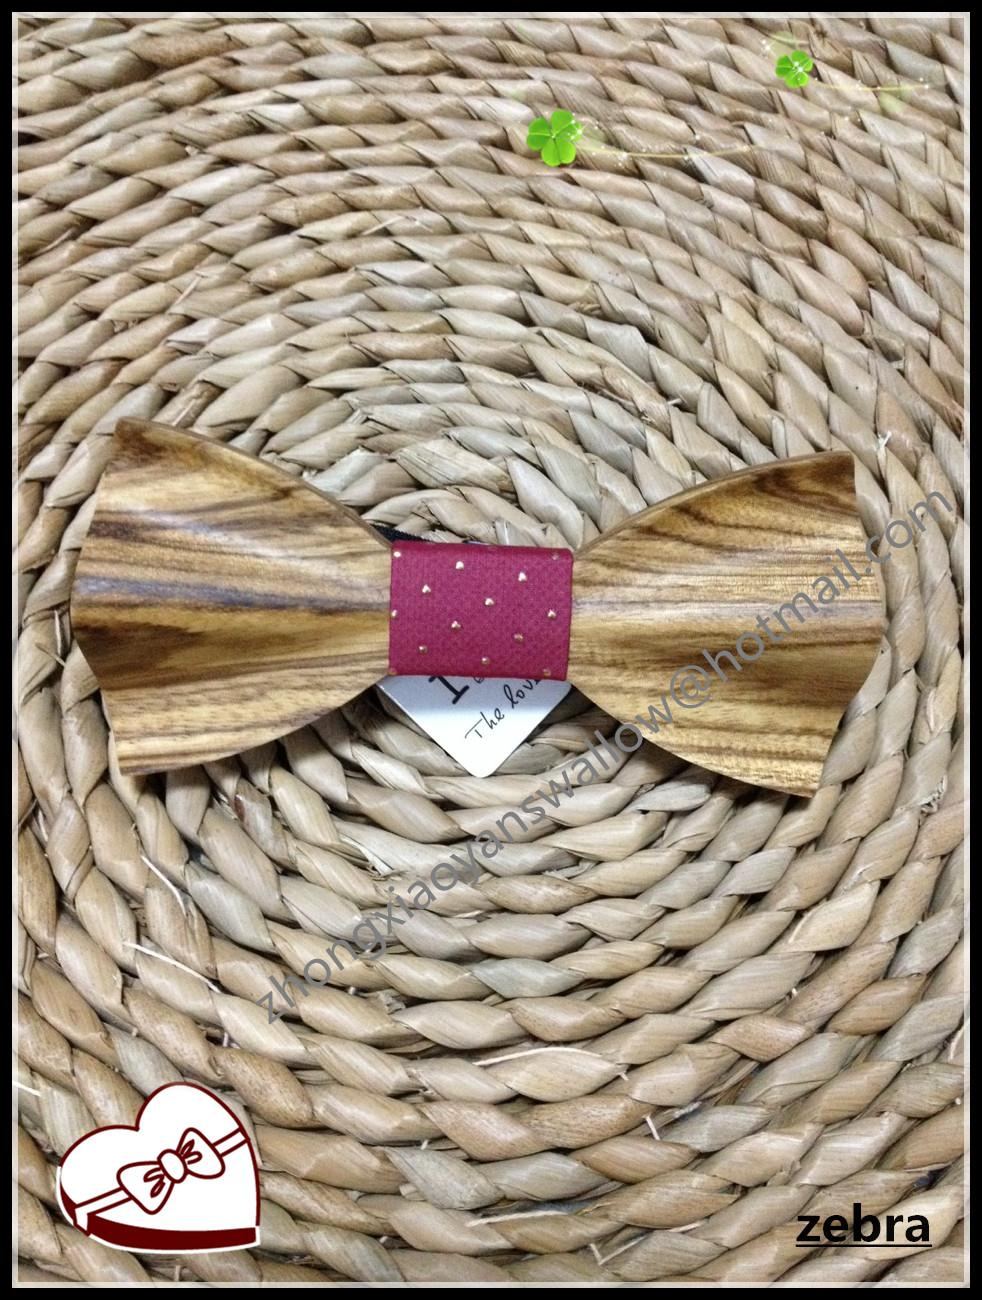 New Hot Selling Christmas Gift Accessories Luxury Purple Zebra Wood Bowtie Men Bow Tie Silk Ties